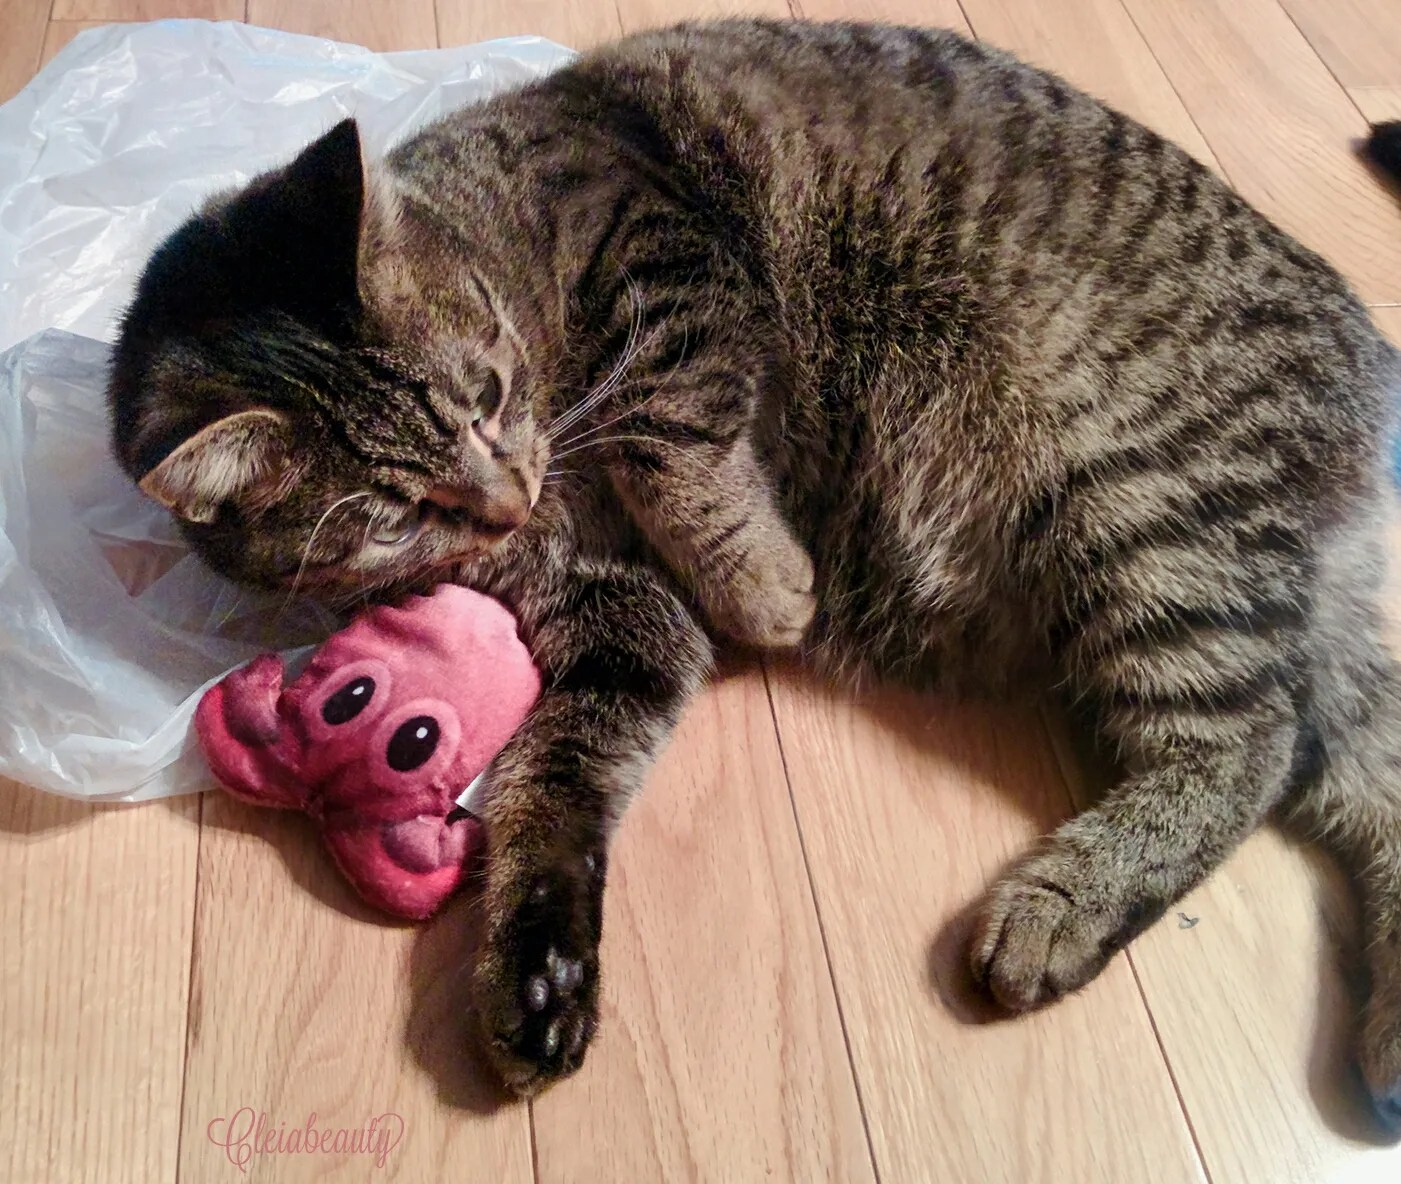 January 2017 Meowbox - Quantum Playing with Octopus Toy